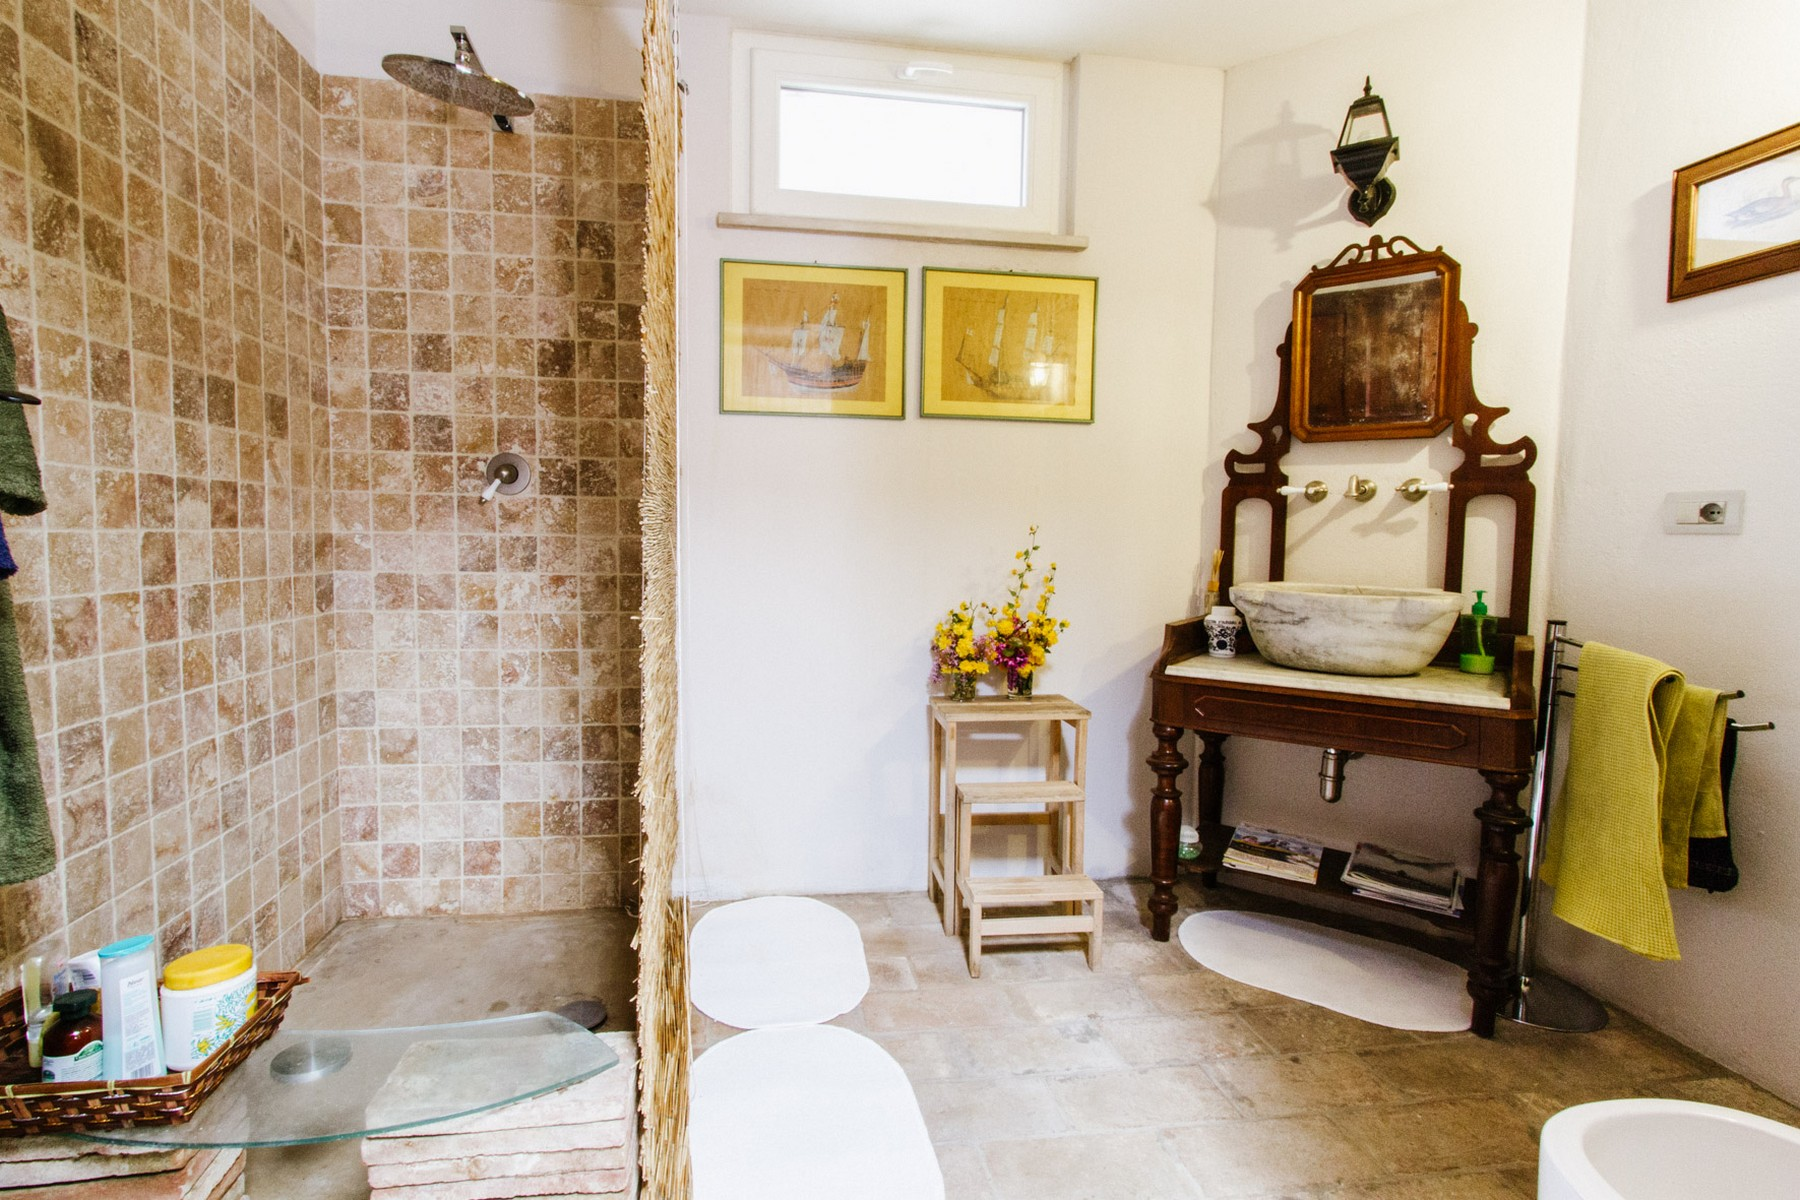 Additional photo for property listing at Seventeenth century country property renovated in 2011 Malvicino Malvicino, Alessandria 15015 Italien